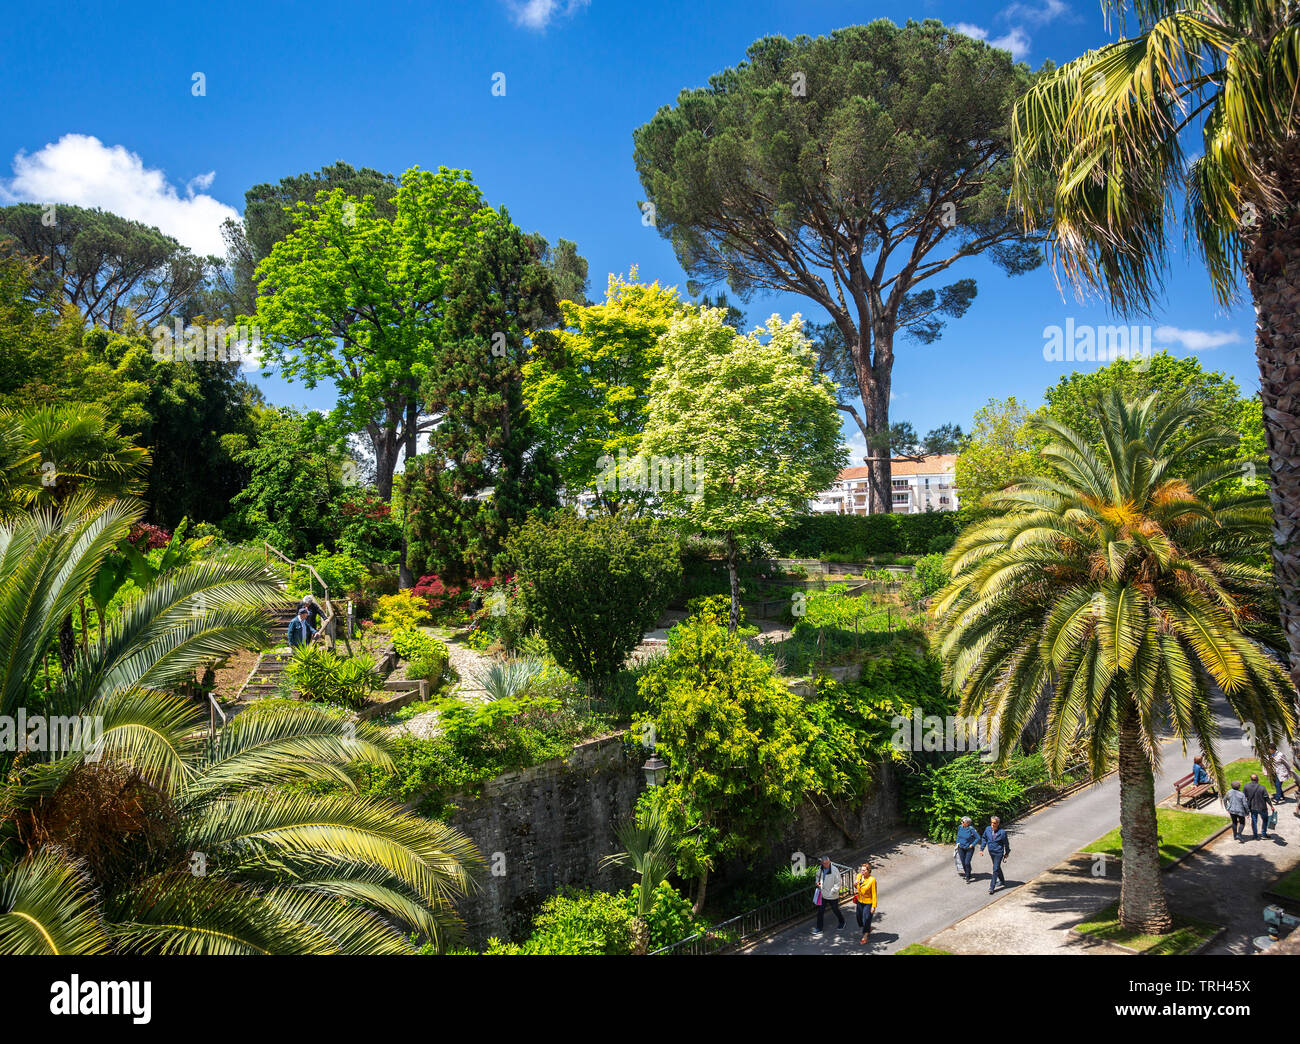 The Bayonne botanical garden (Aquitaine - France). Nestled high on the Lachepaillet rampart, it has been laid out according to a Japanese  model. - Stock Image